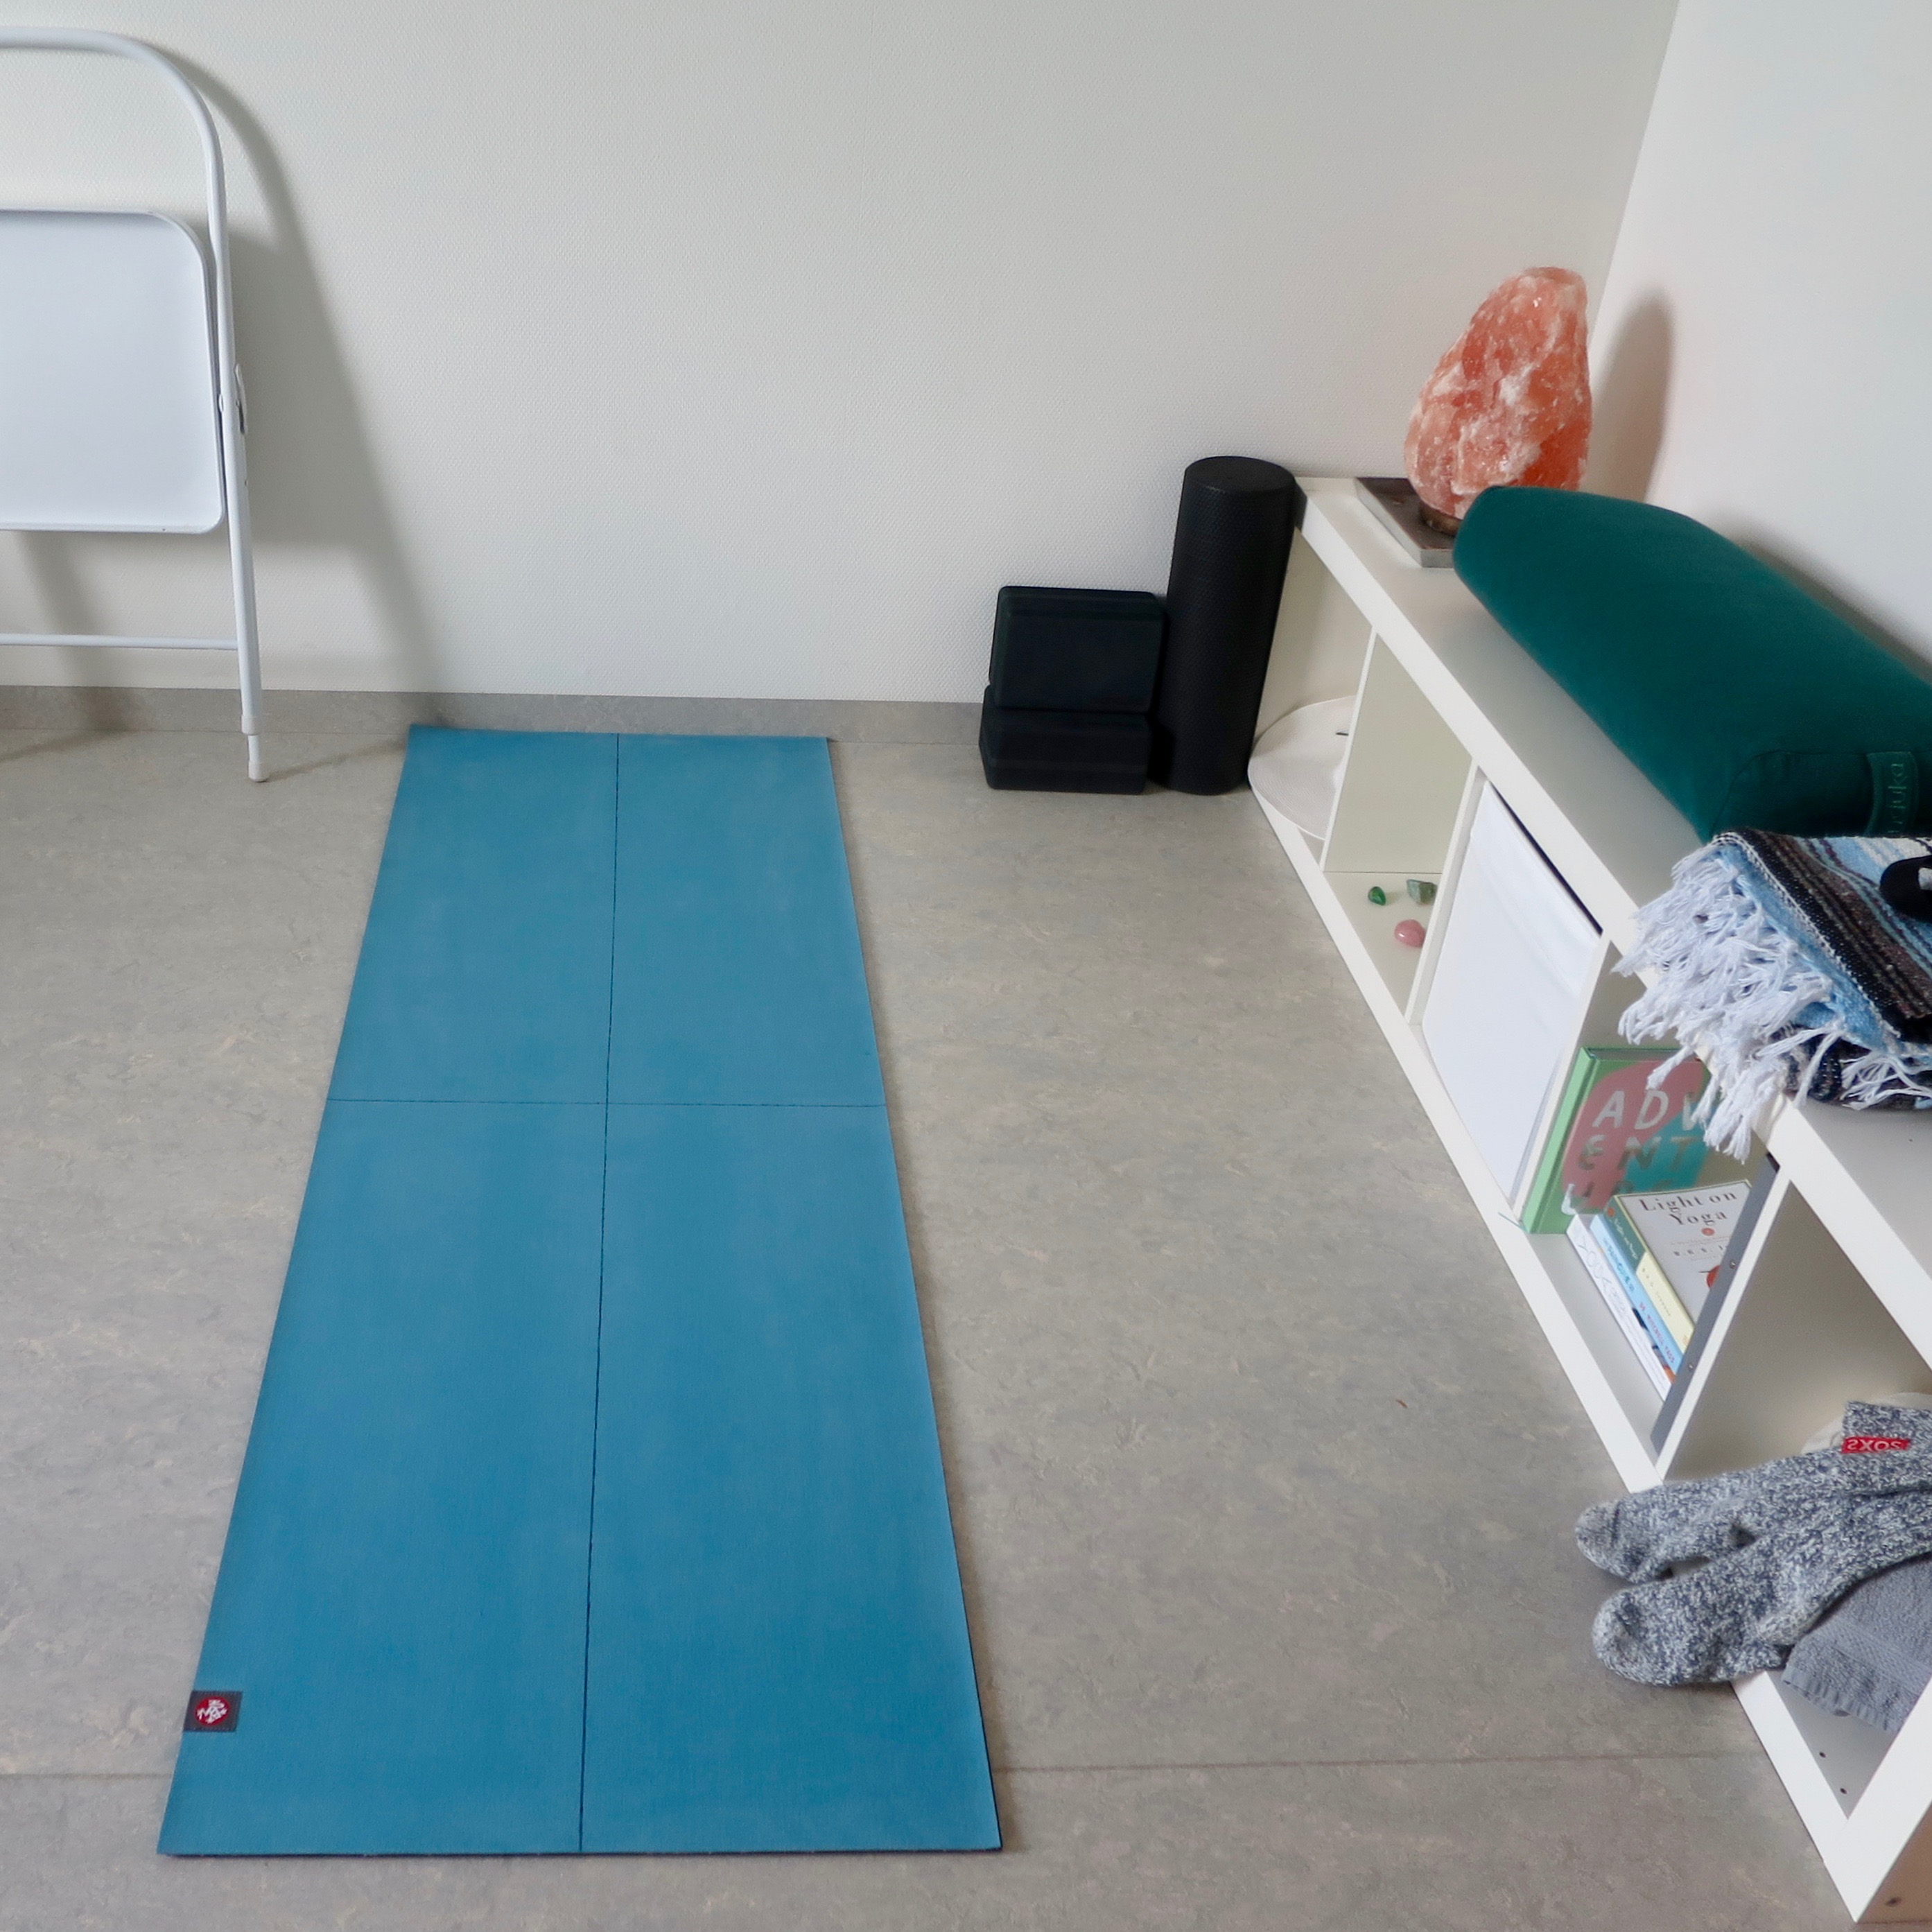 My Yoga for Scoliosis Practice Space